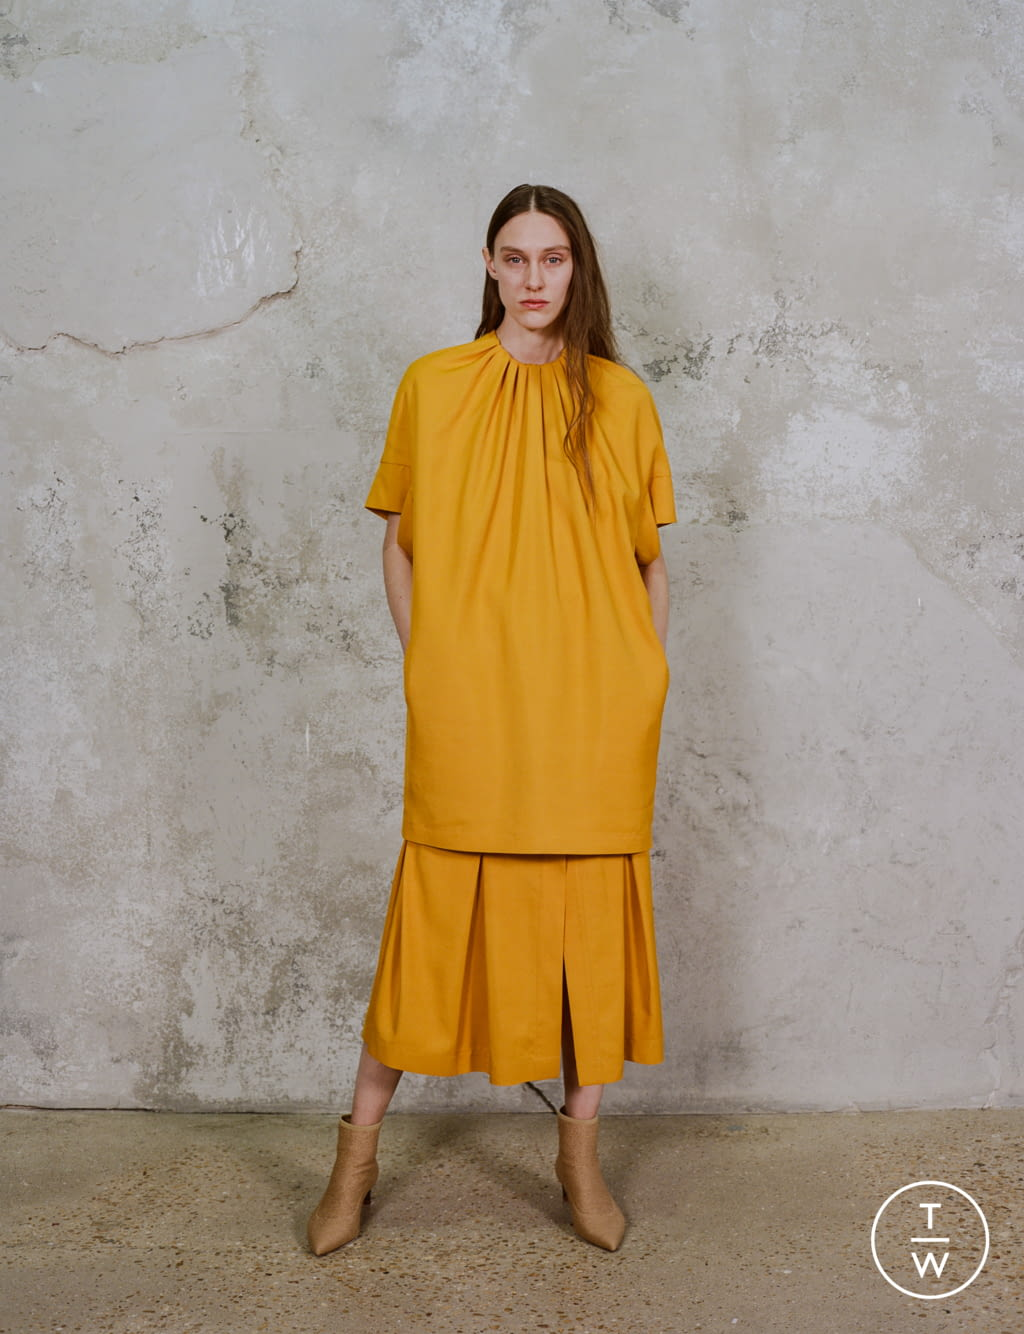 Fashion Week Paris Pre-Fall 2020 look 19 de la collection Dawei womenswear